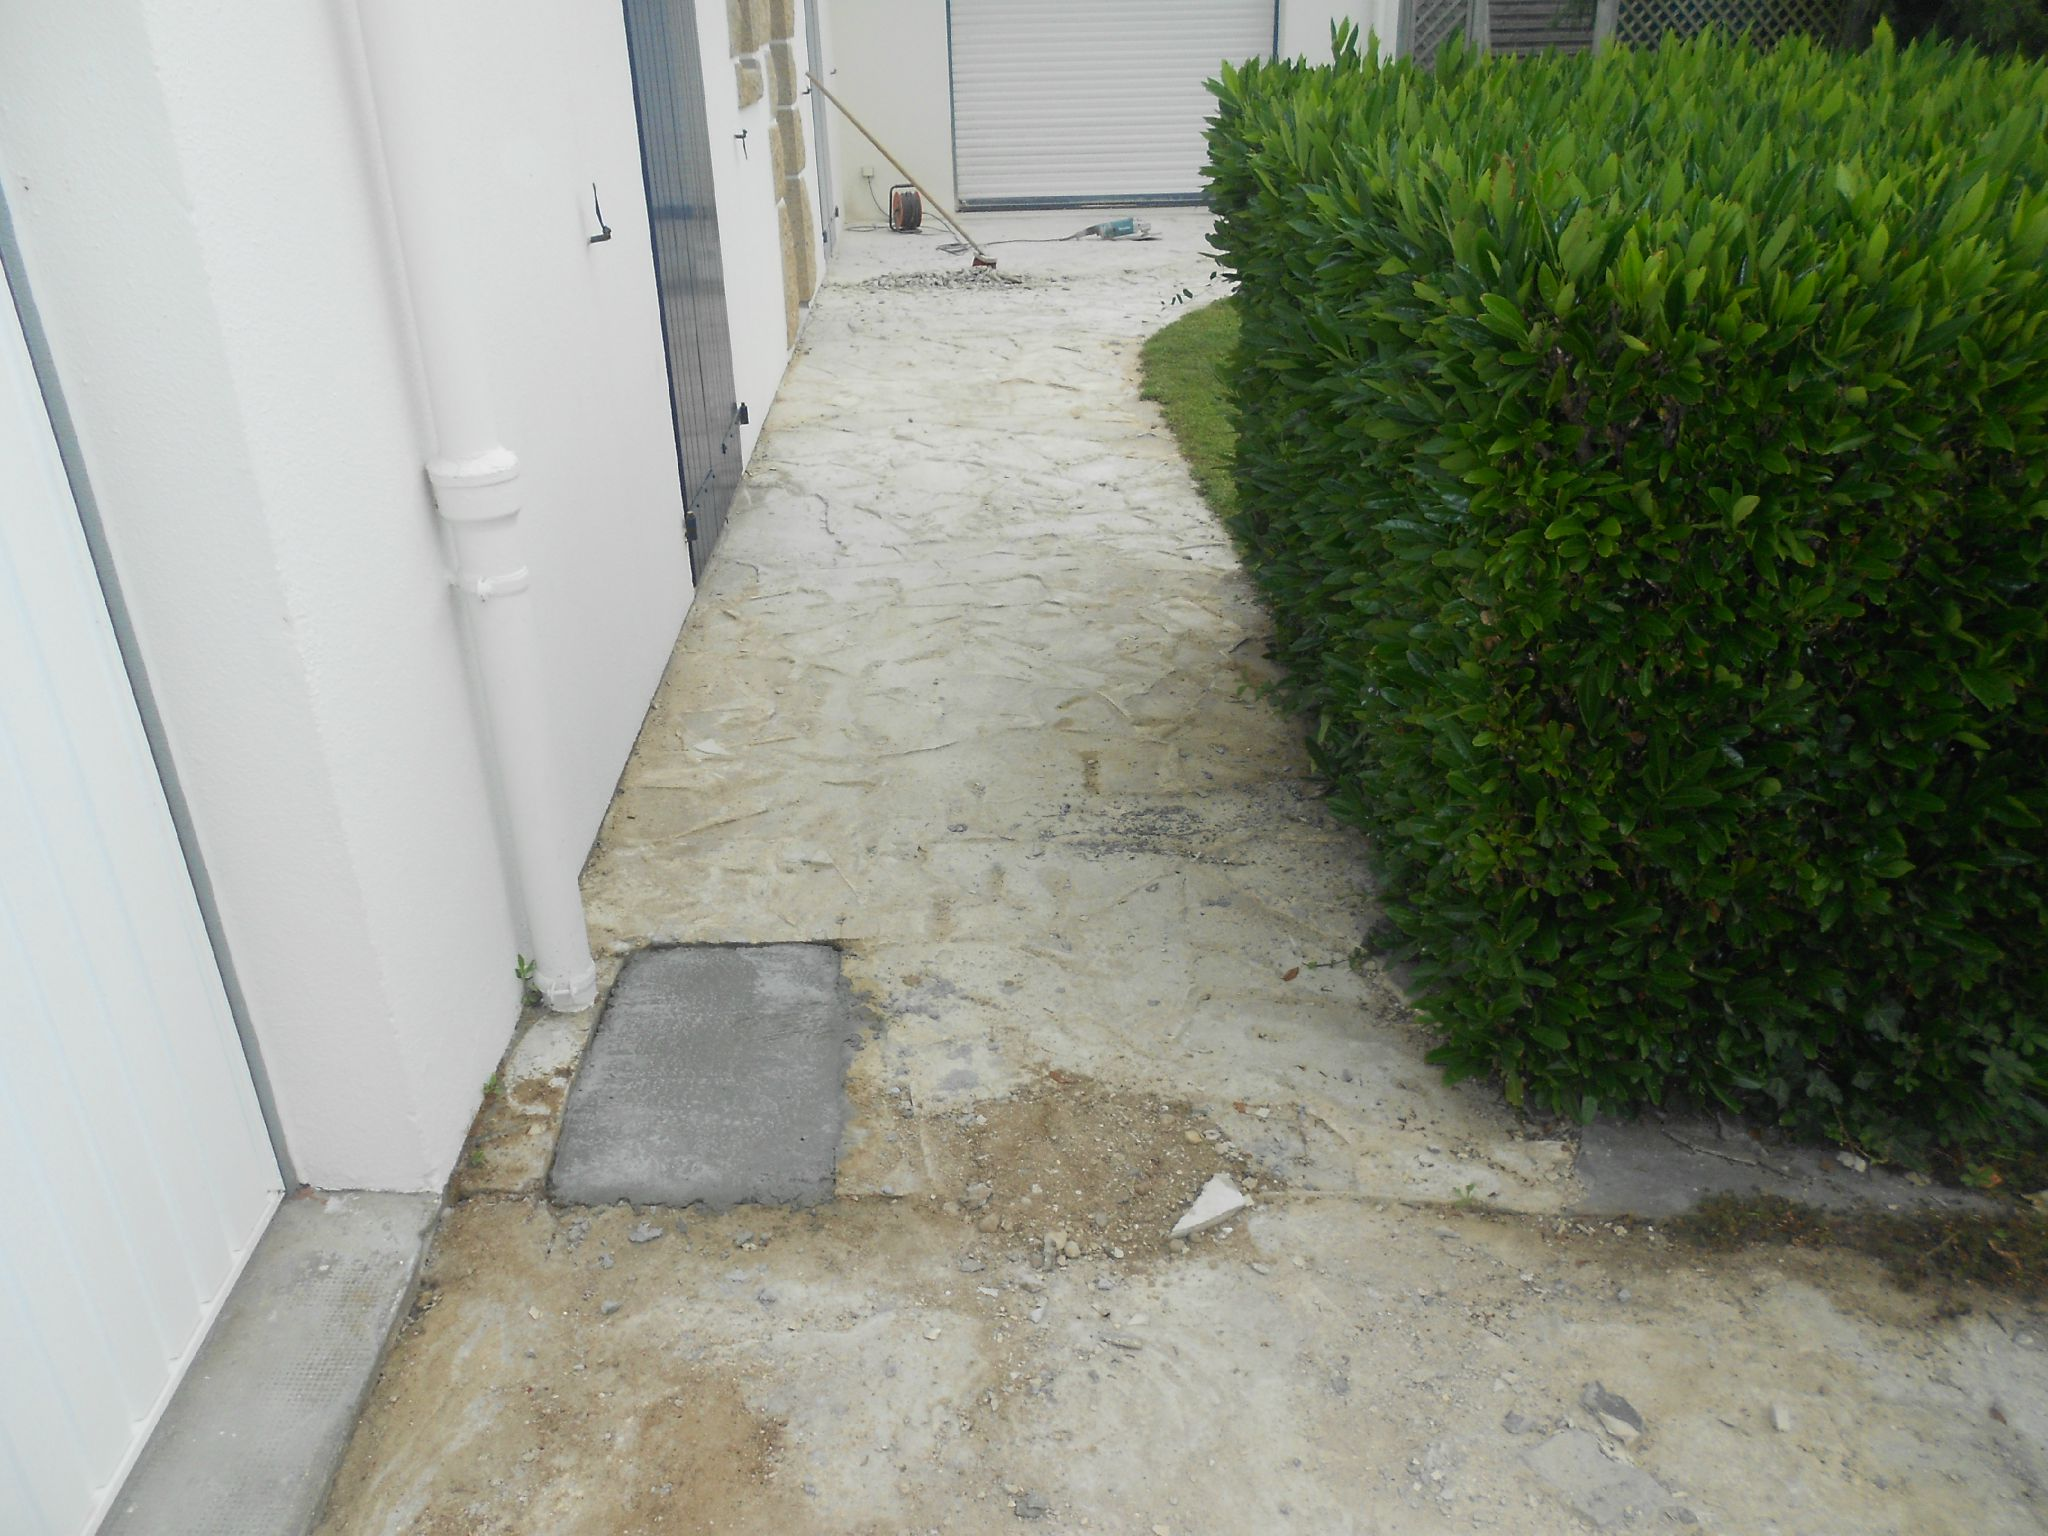 Remplacement ancien dallage par du carrelage en 4 formats for Ragreage avant carrelage